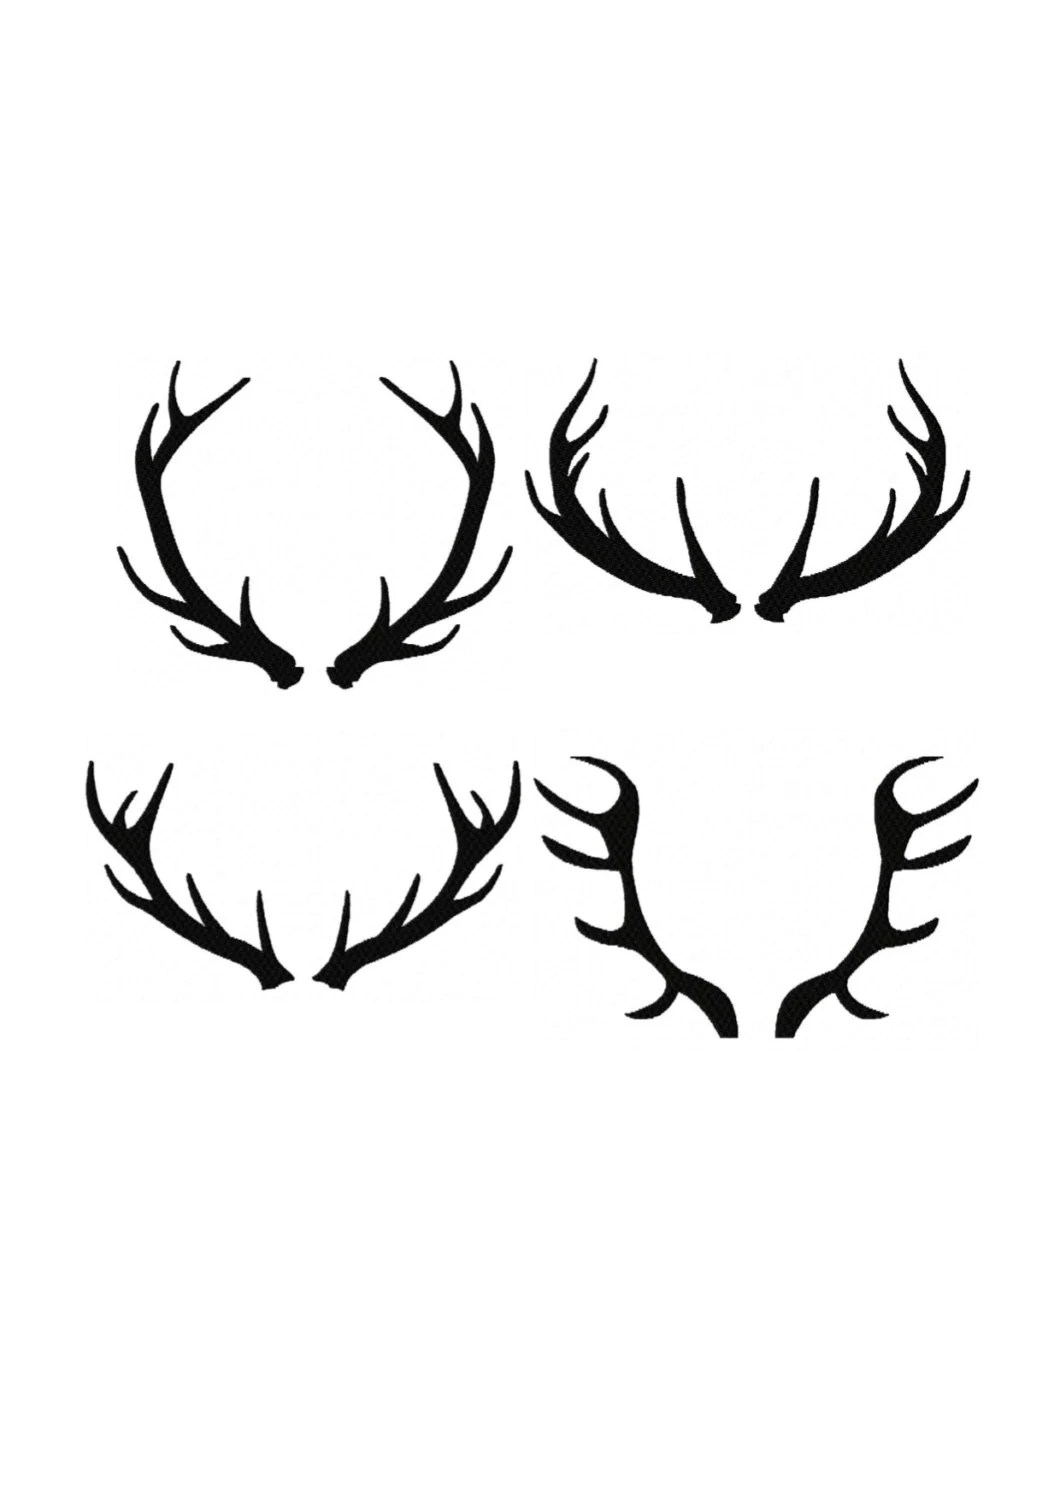 Set 4 Silhouette Buck Antlers Stant Download Ttern